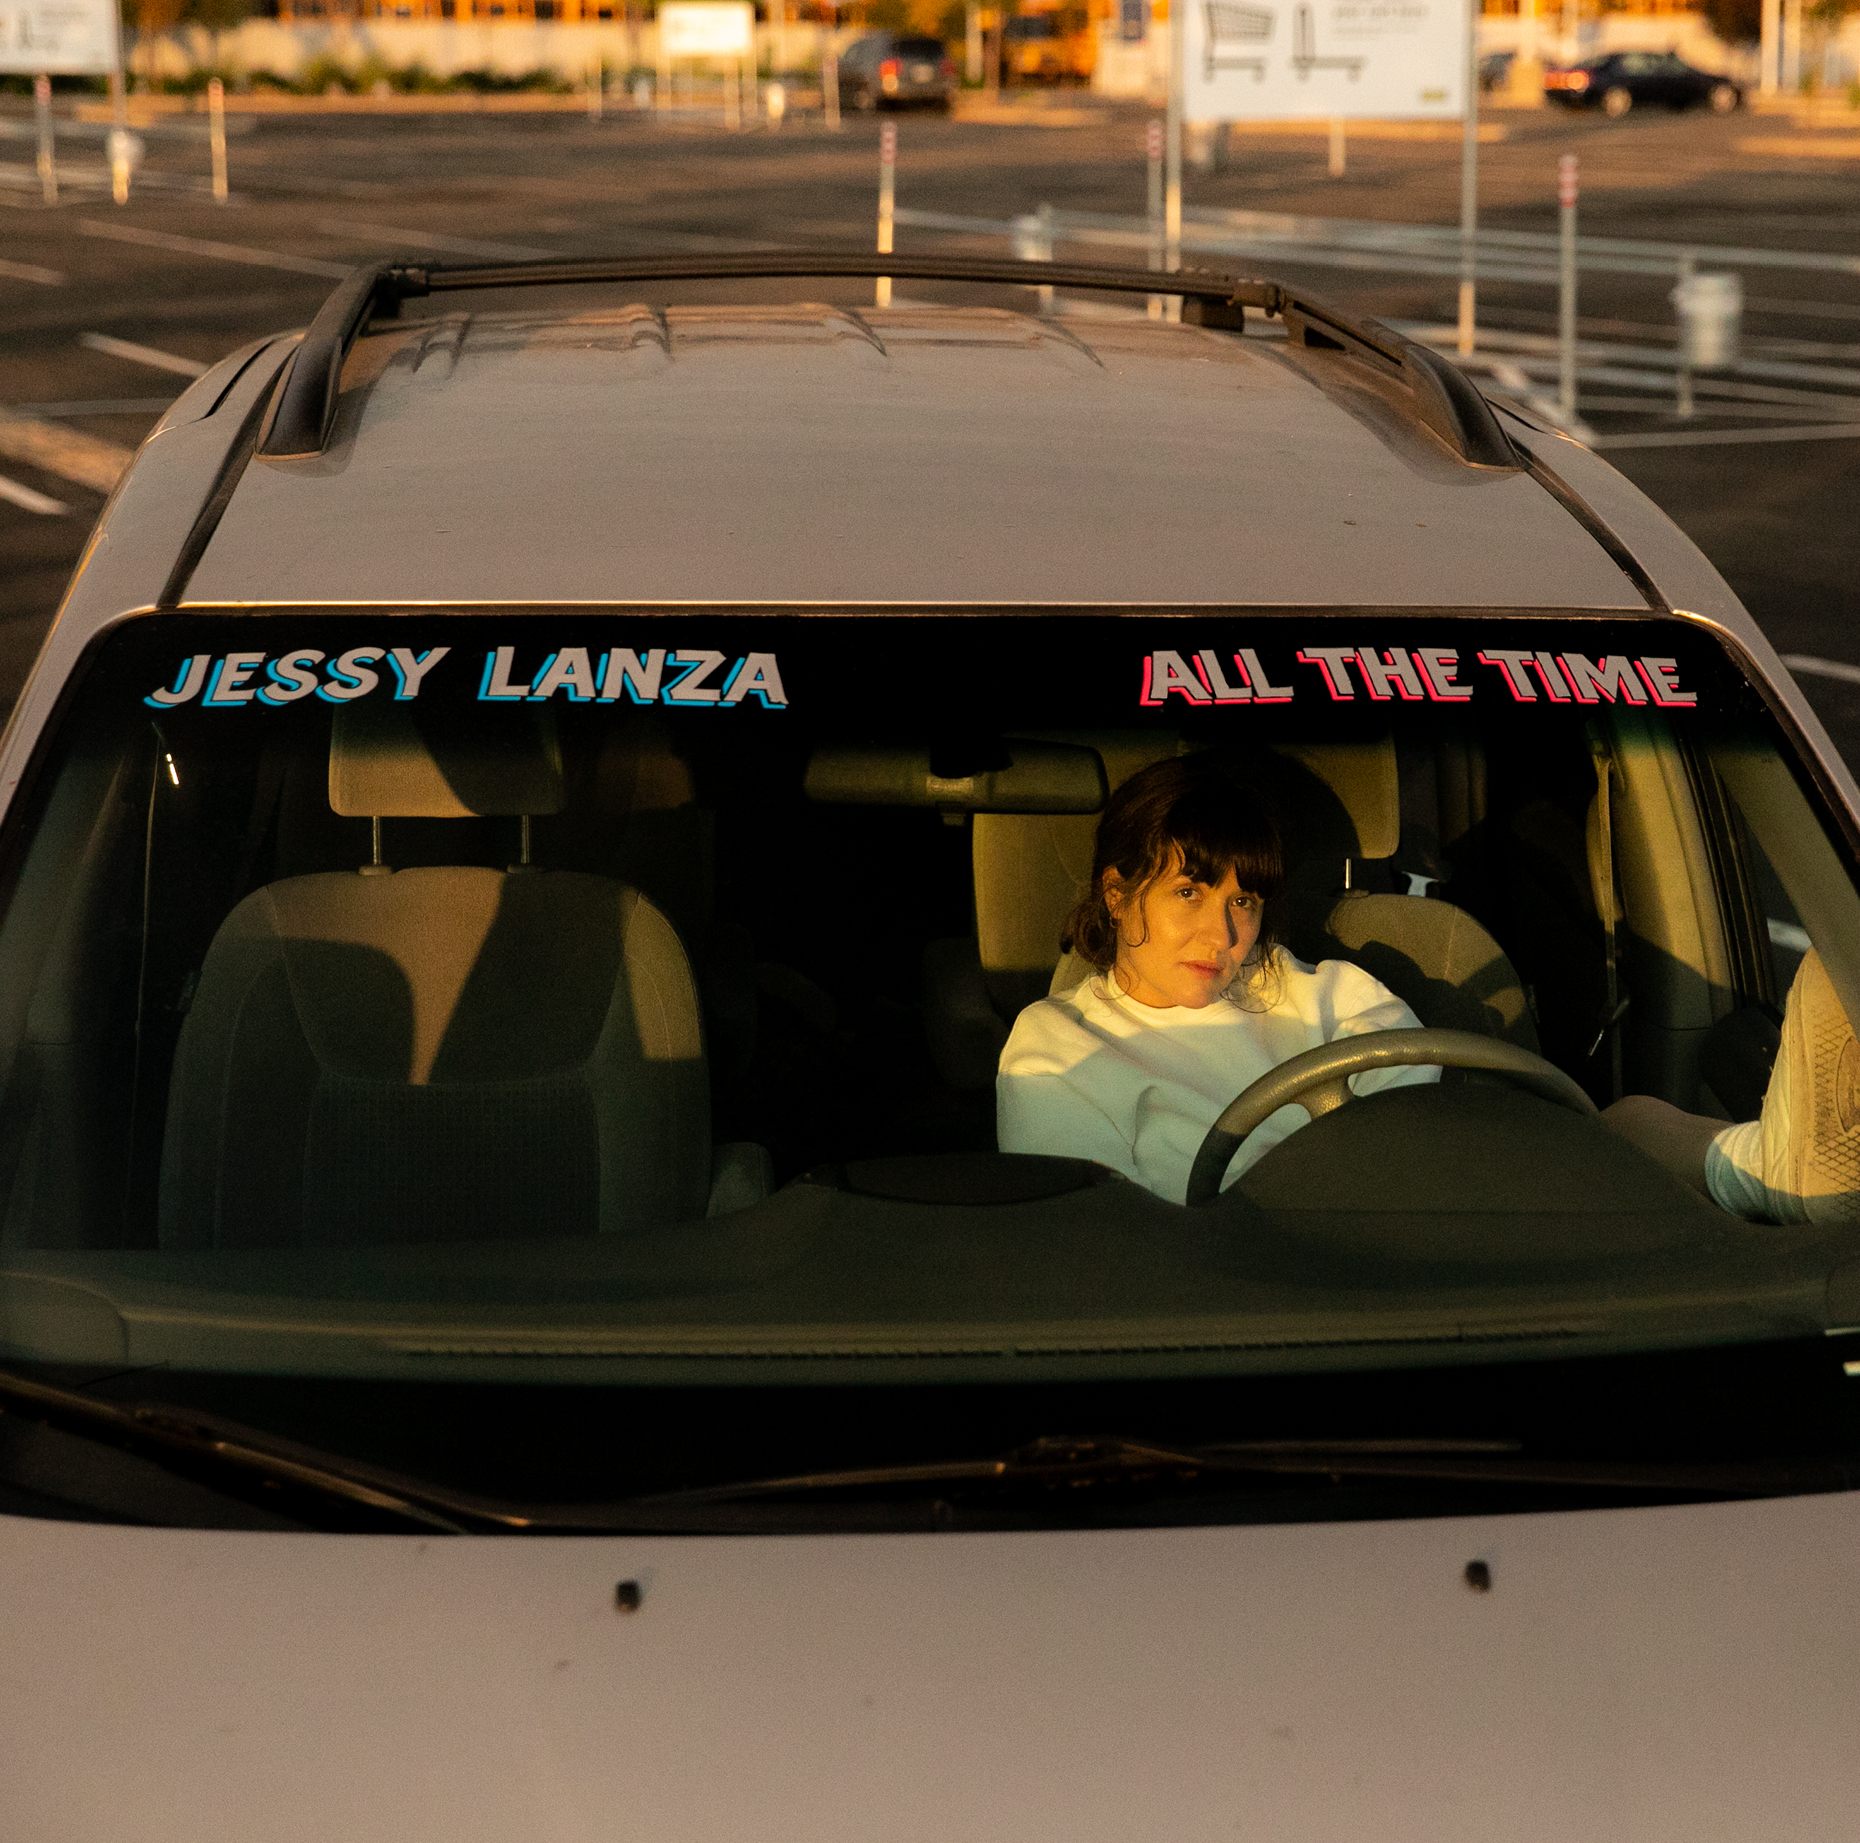 Jessy Lanza, All The Time Image